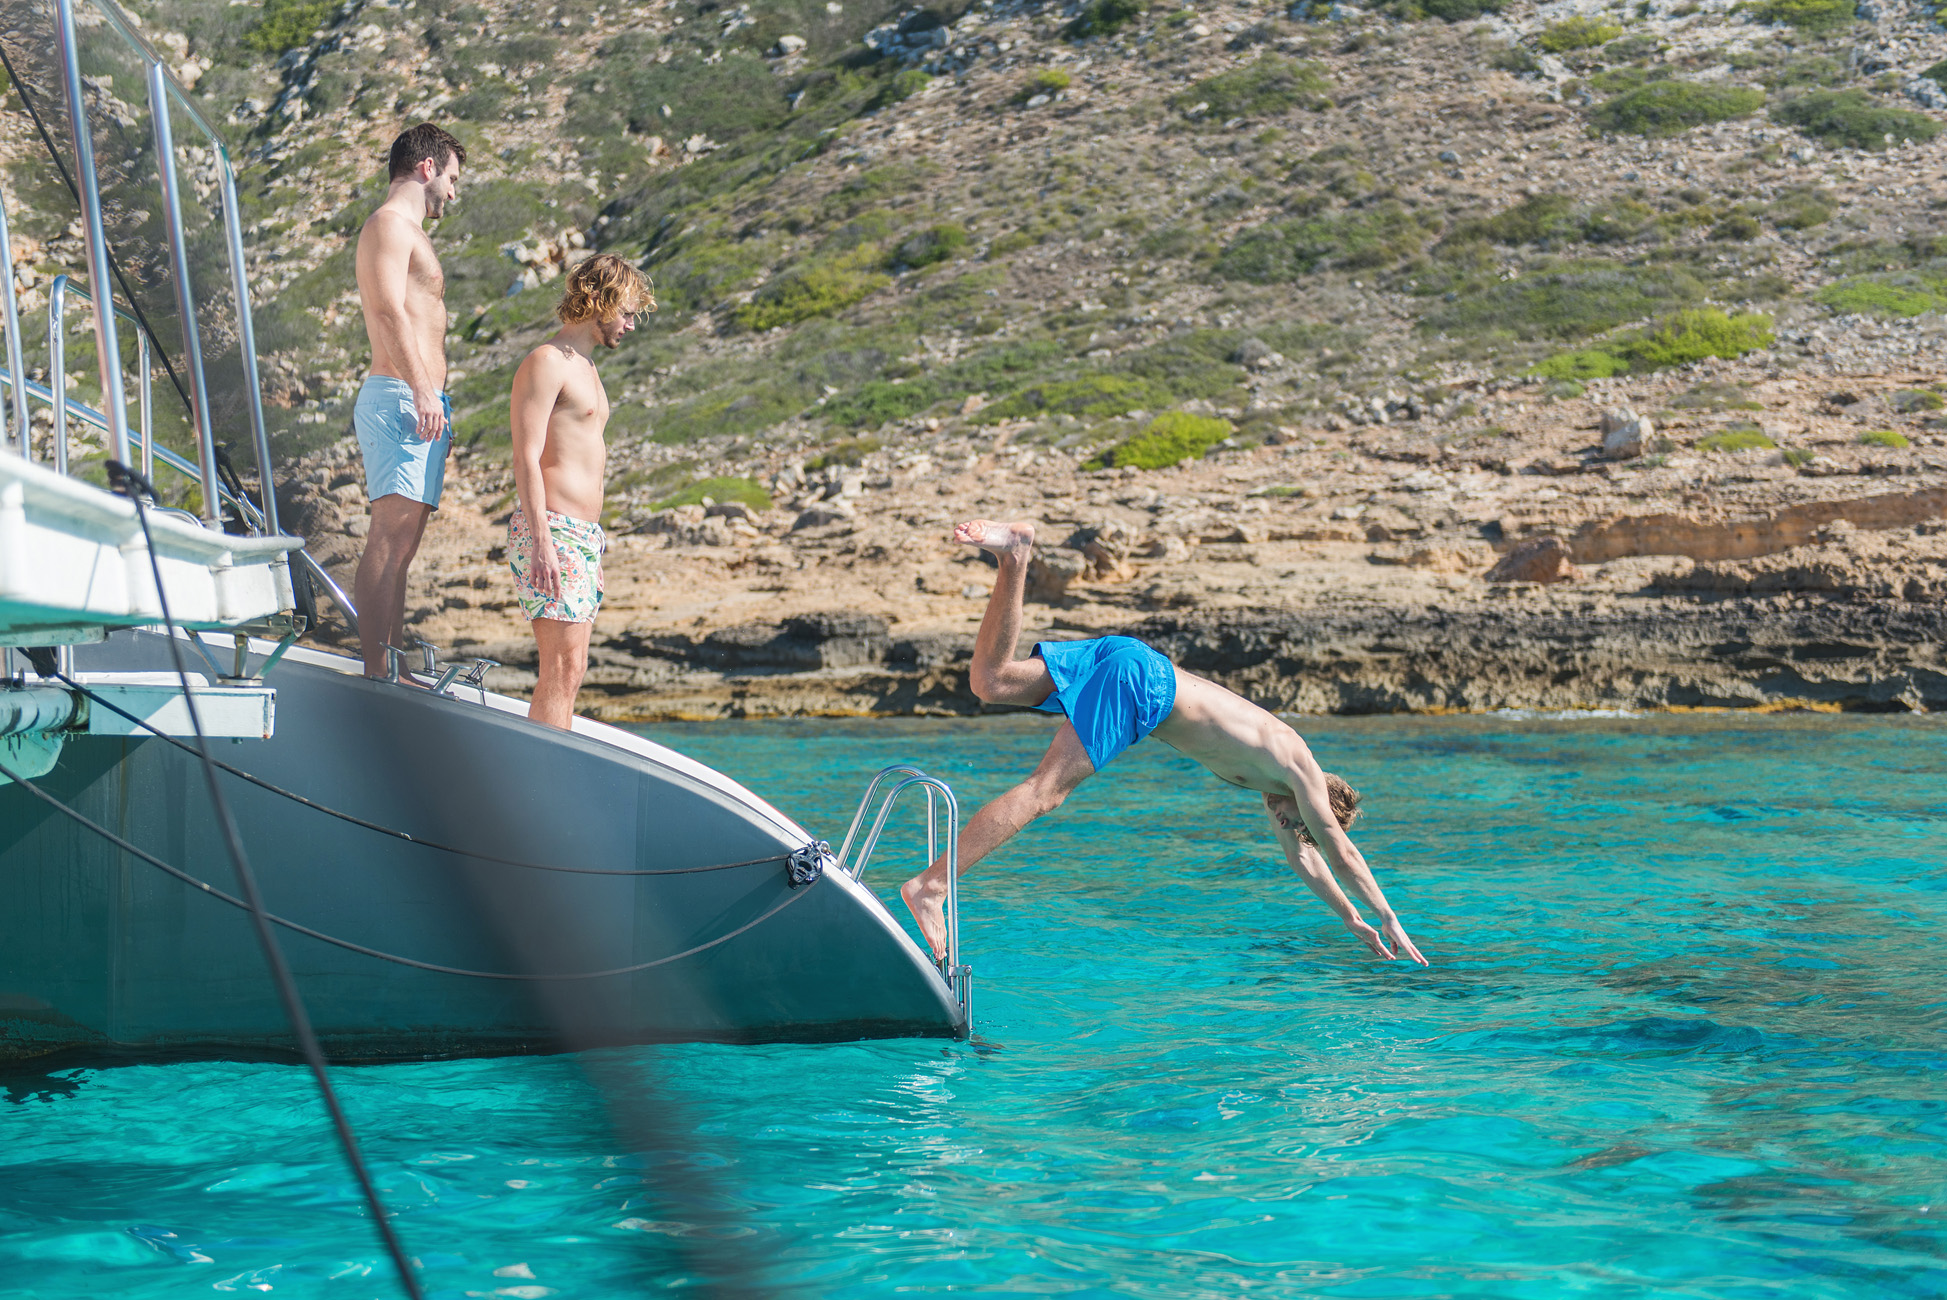 Day Charter in Mallorca